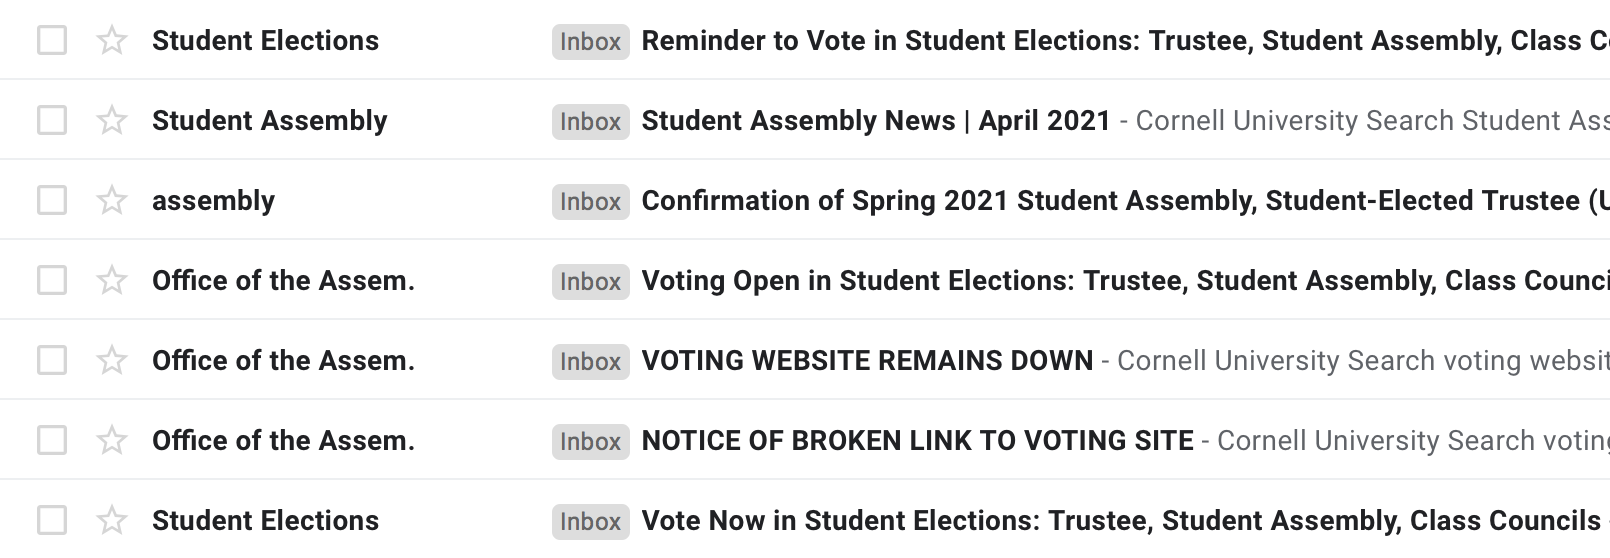 SA Elections Email Confirms There Is Currently No New Update, But They Will Send Update If There Is a New Update